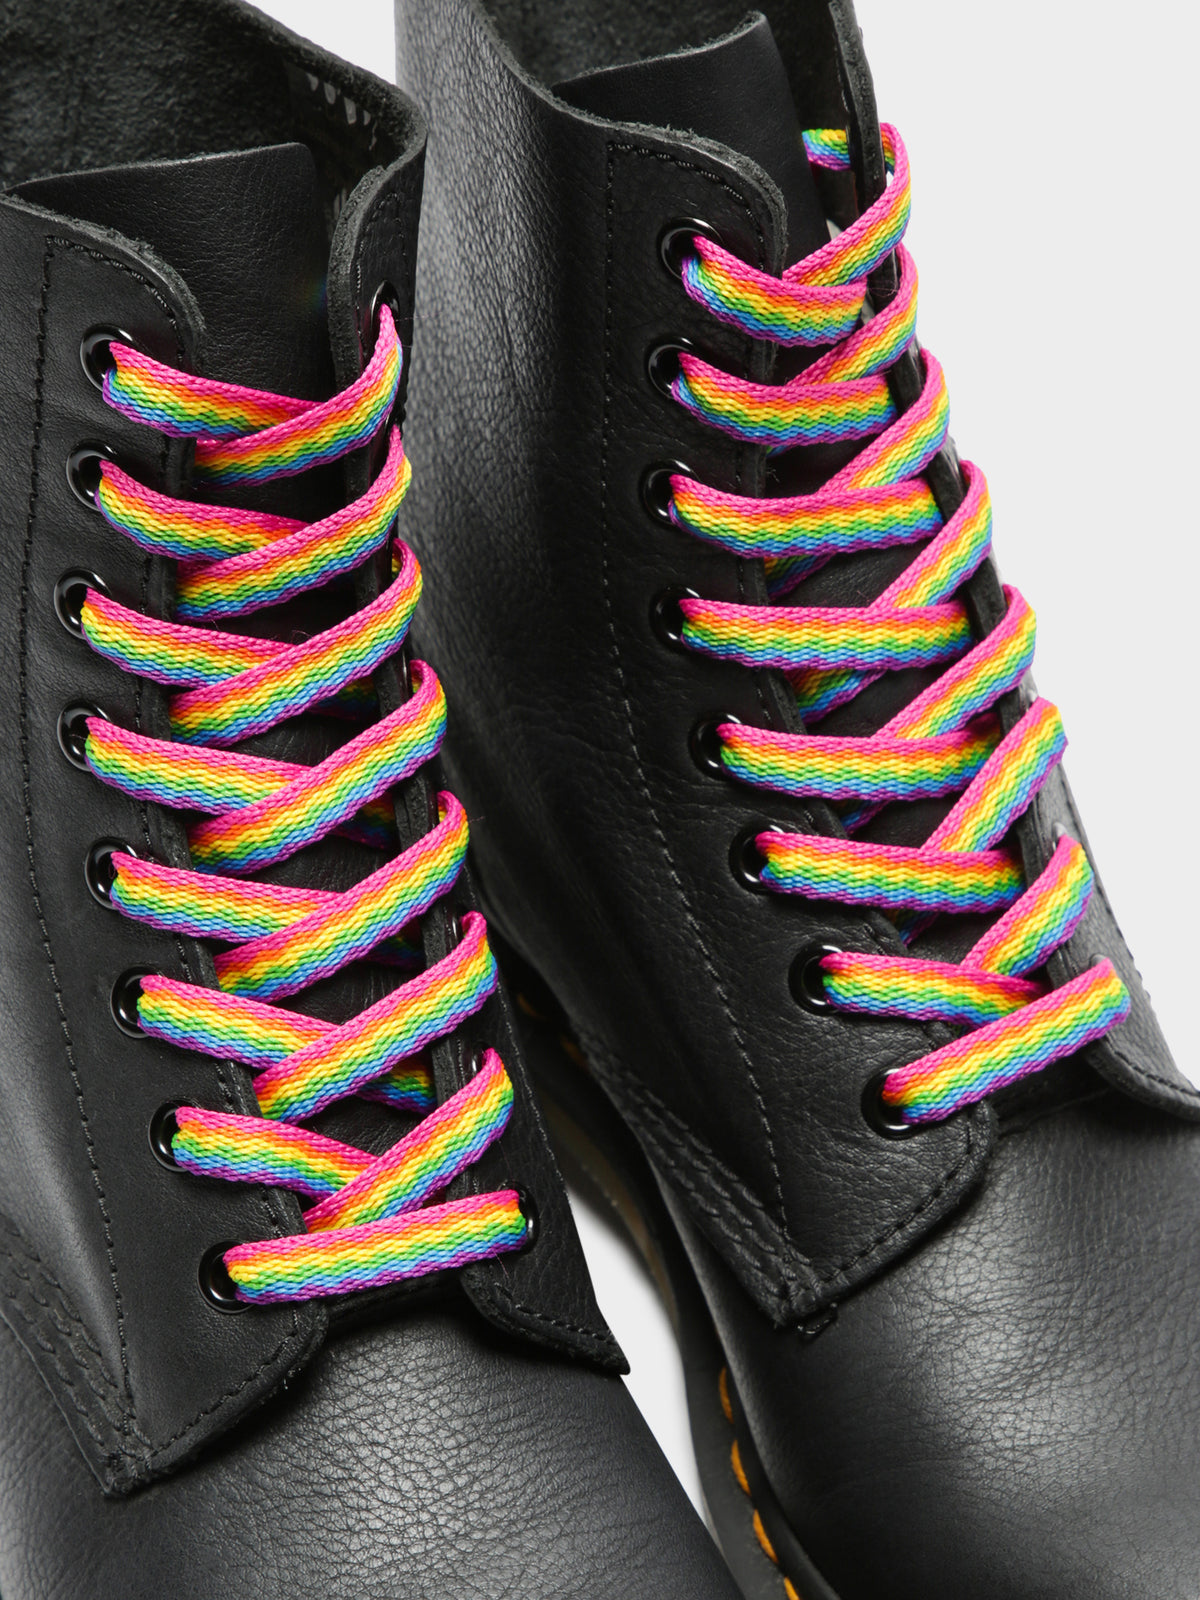 Pride 8-10 Eye Laces in Rainbow